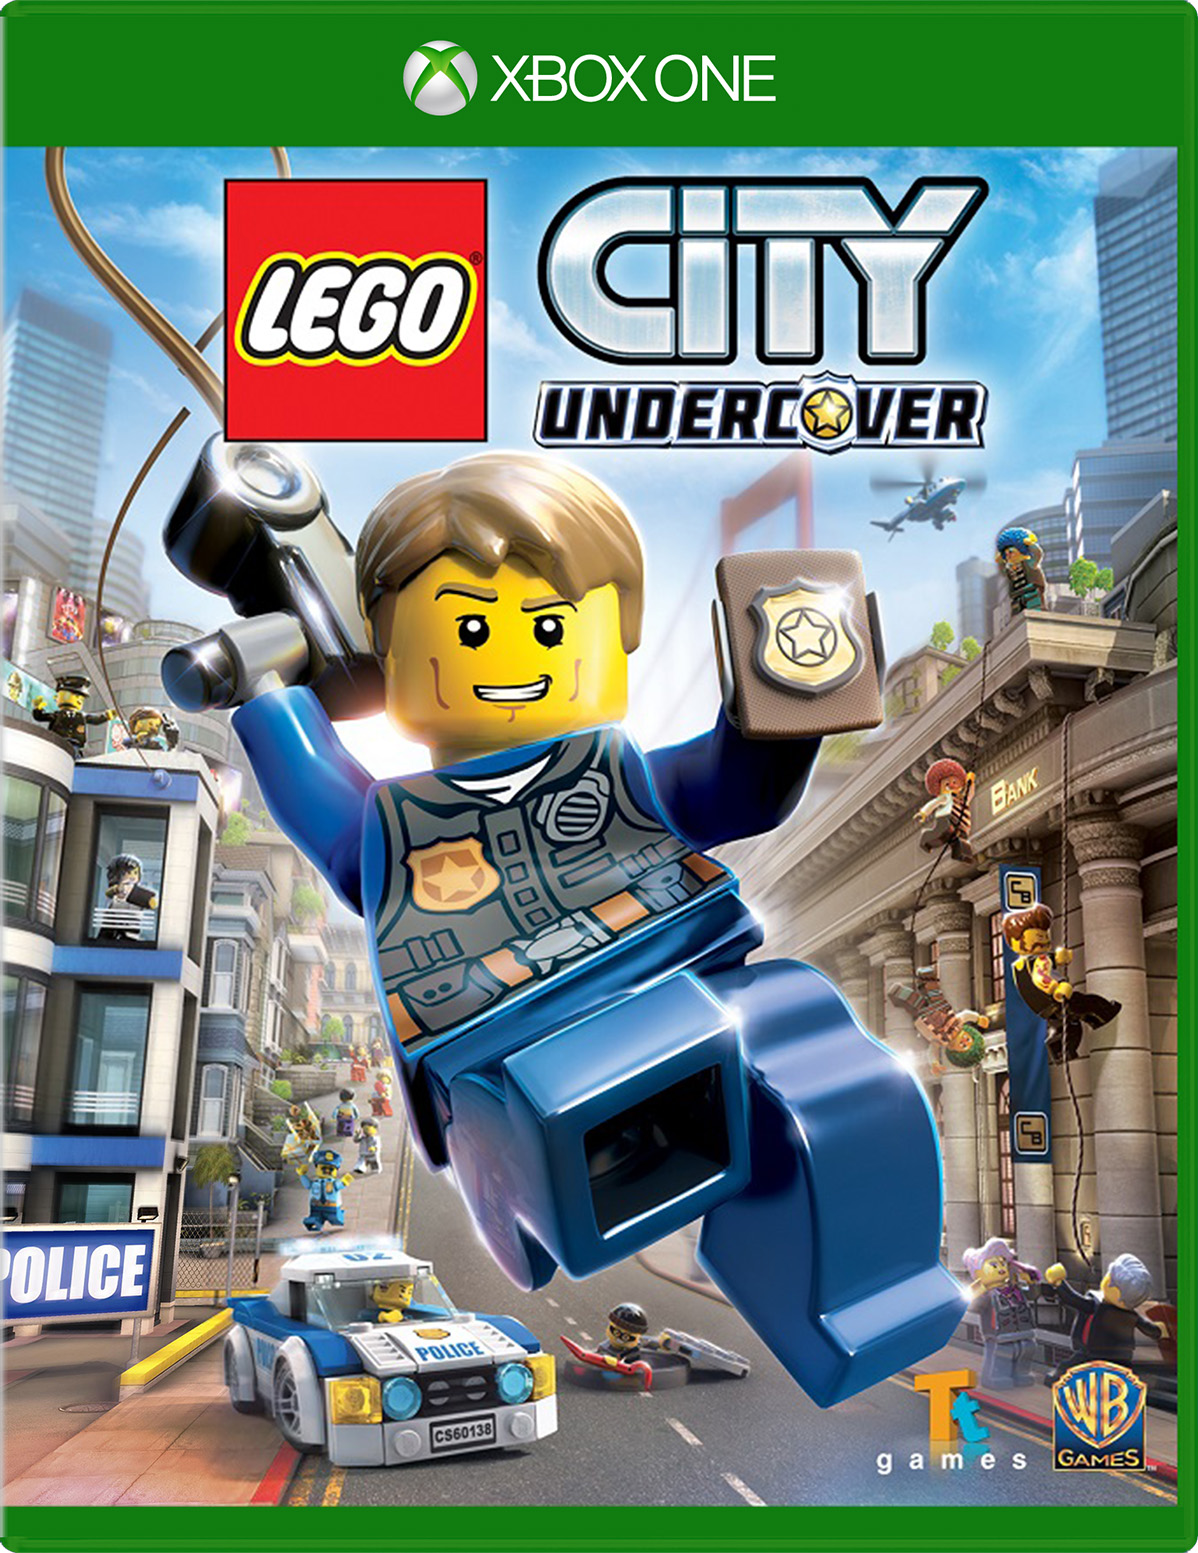 Buy LEGO CITY Undercover for Xbox One - Microsoft Store